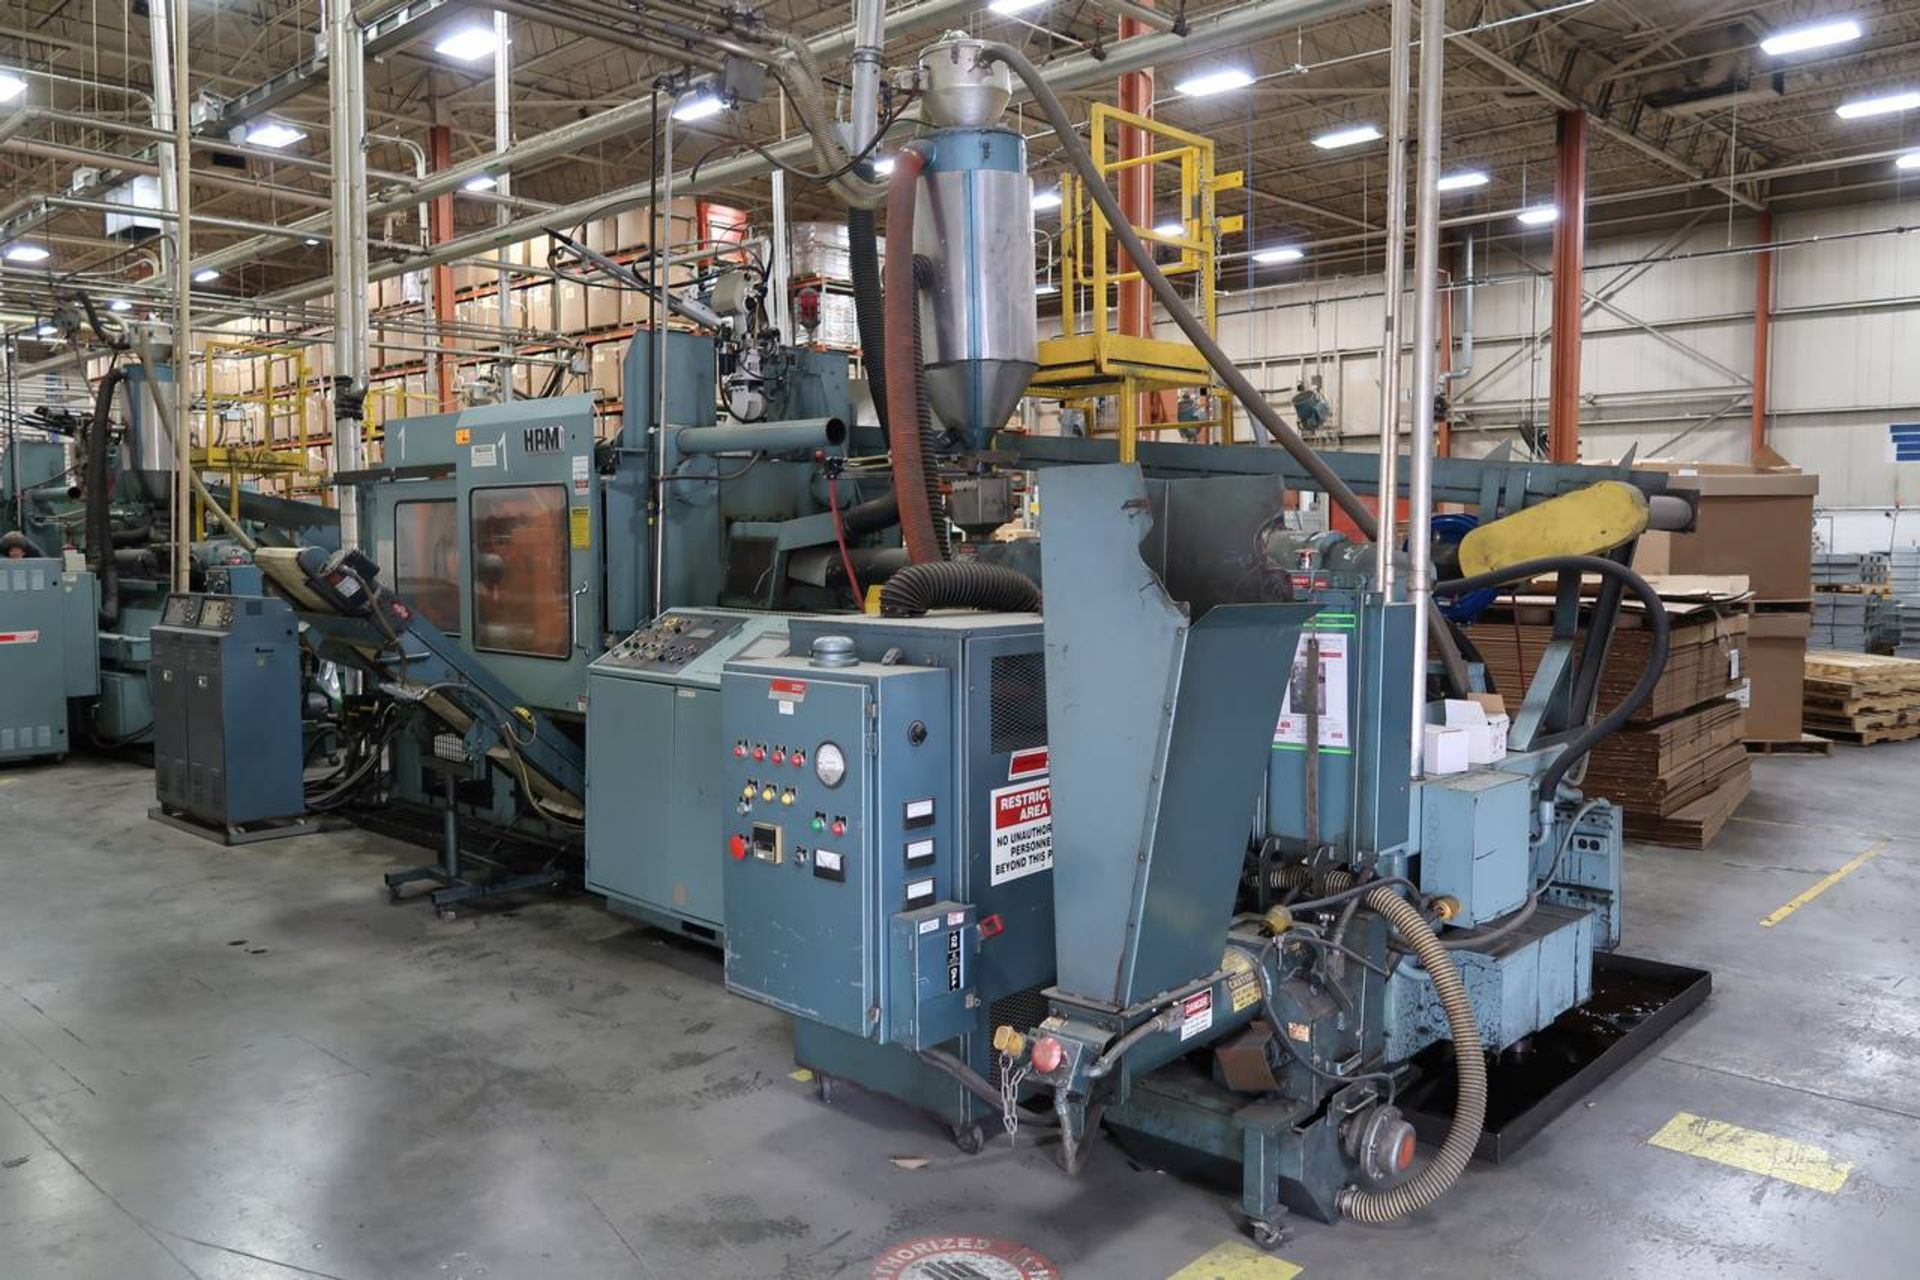 1986 HPM 400-TP-20 400-Ton Thermo Plastic Injection Molding Press - Image 2 of 40